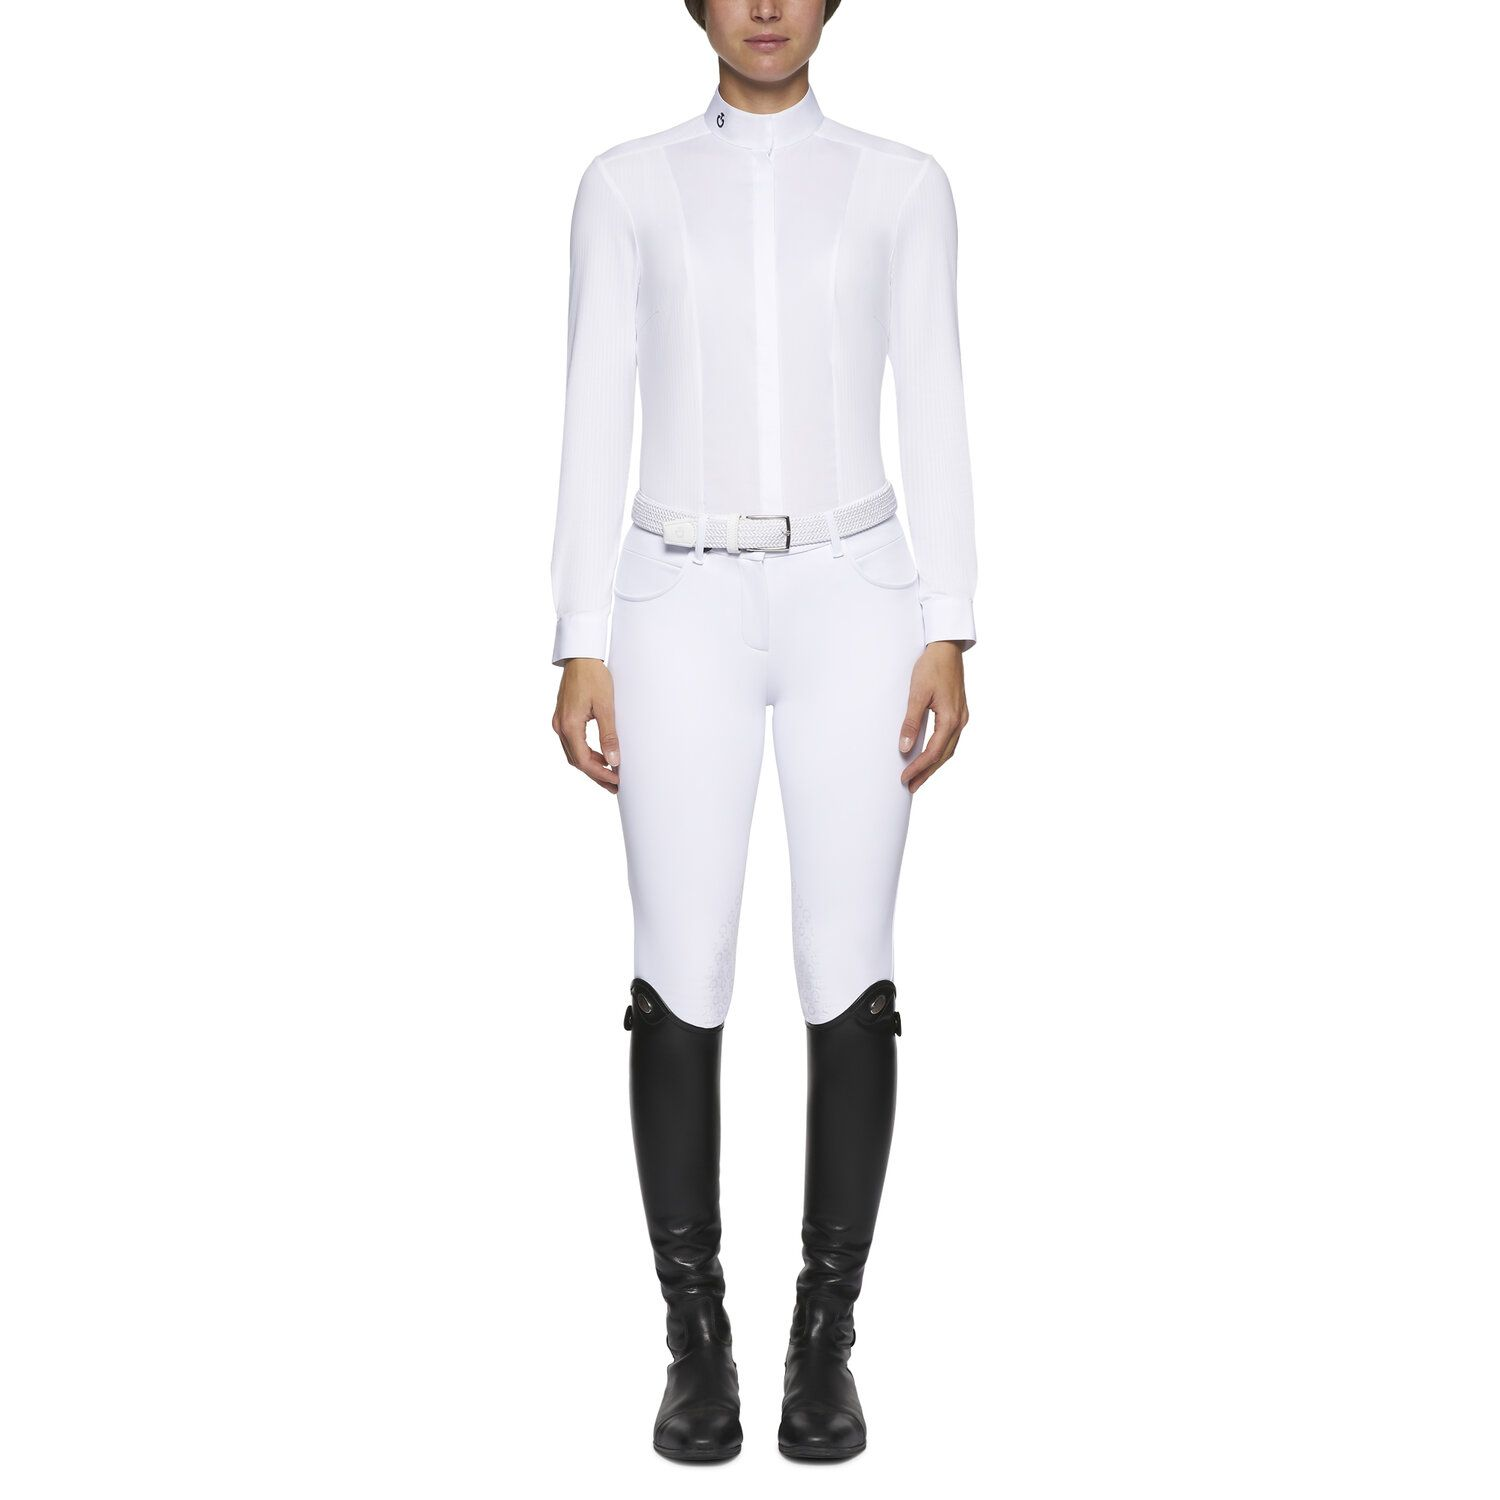 Women's micro perforated long-sleeved shirt